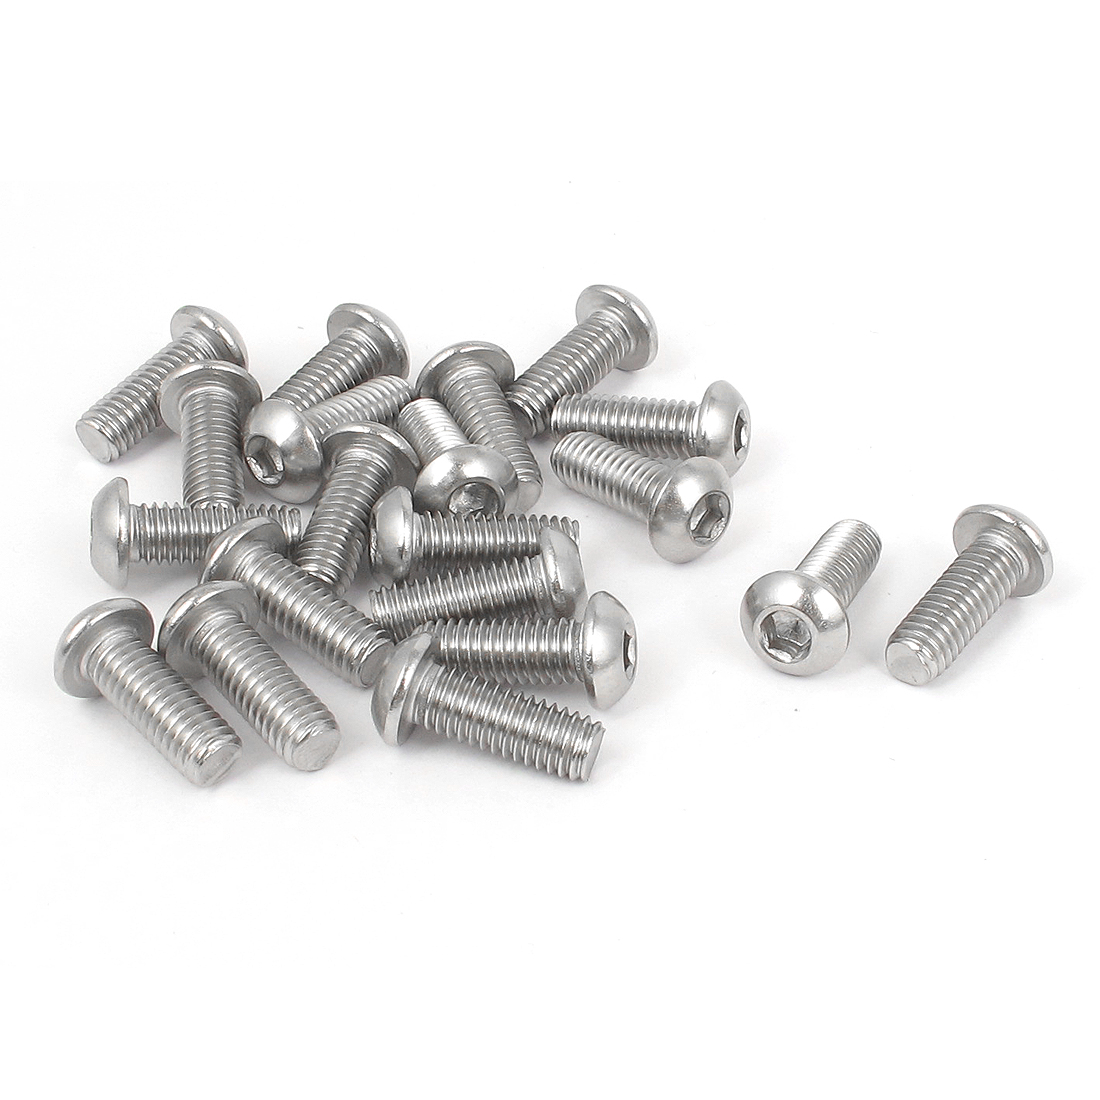 M6x16mm 304 Stainless Steel Hex Socket Machine Countersunk Round Head Screw Bolts 20PCS